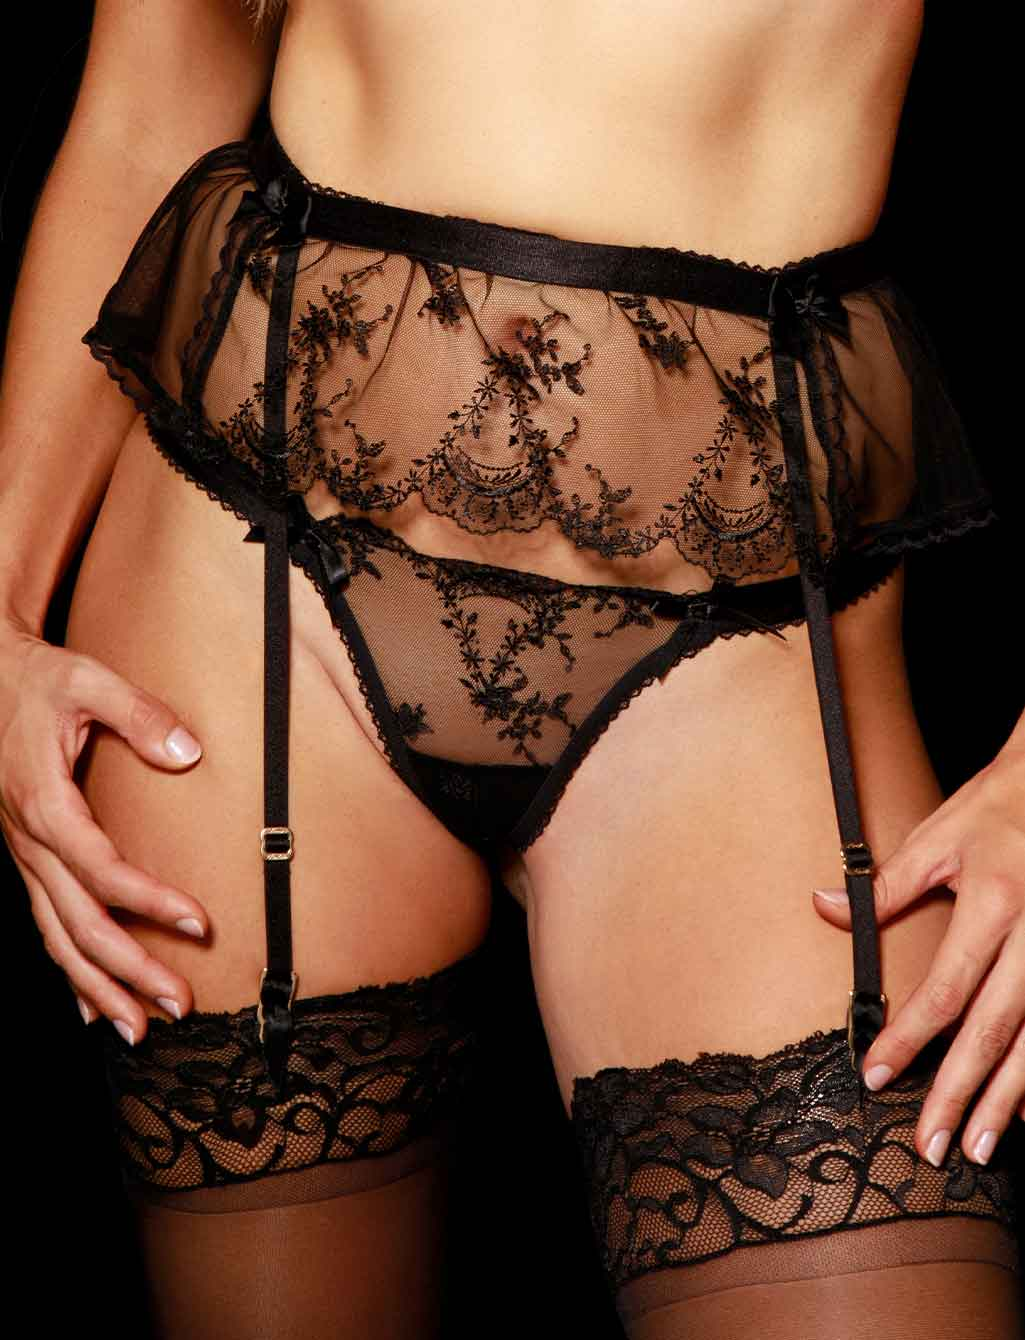 Layla Black Babydoll Garter Belt | Shop  Lingerie Honey Birdette